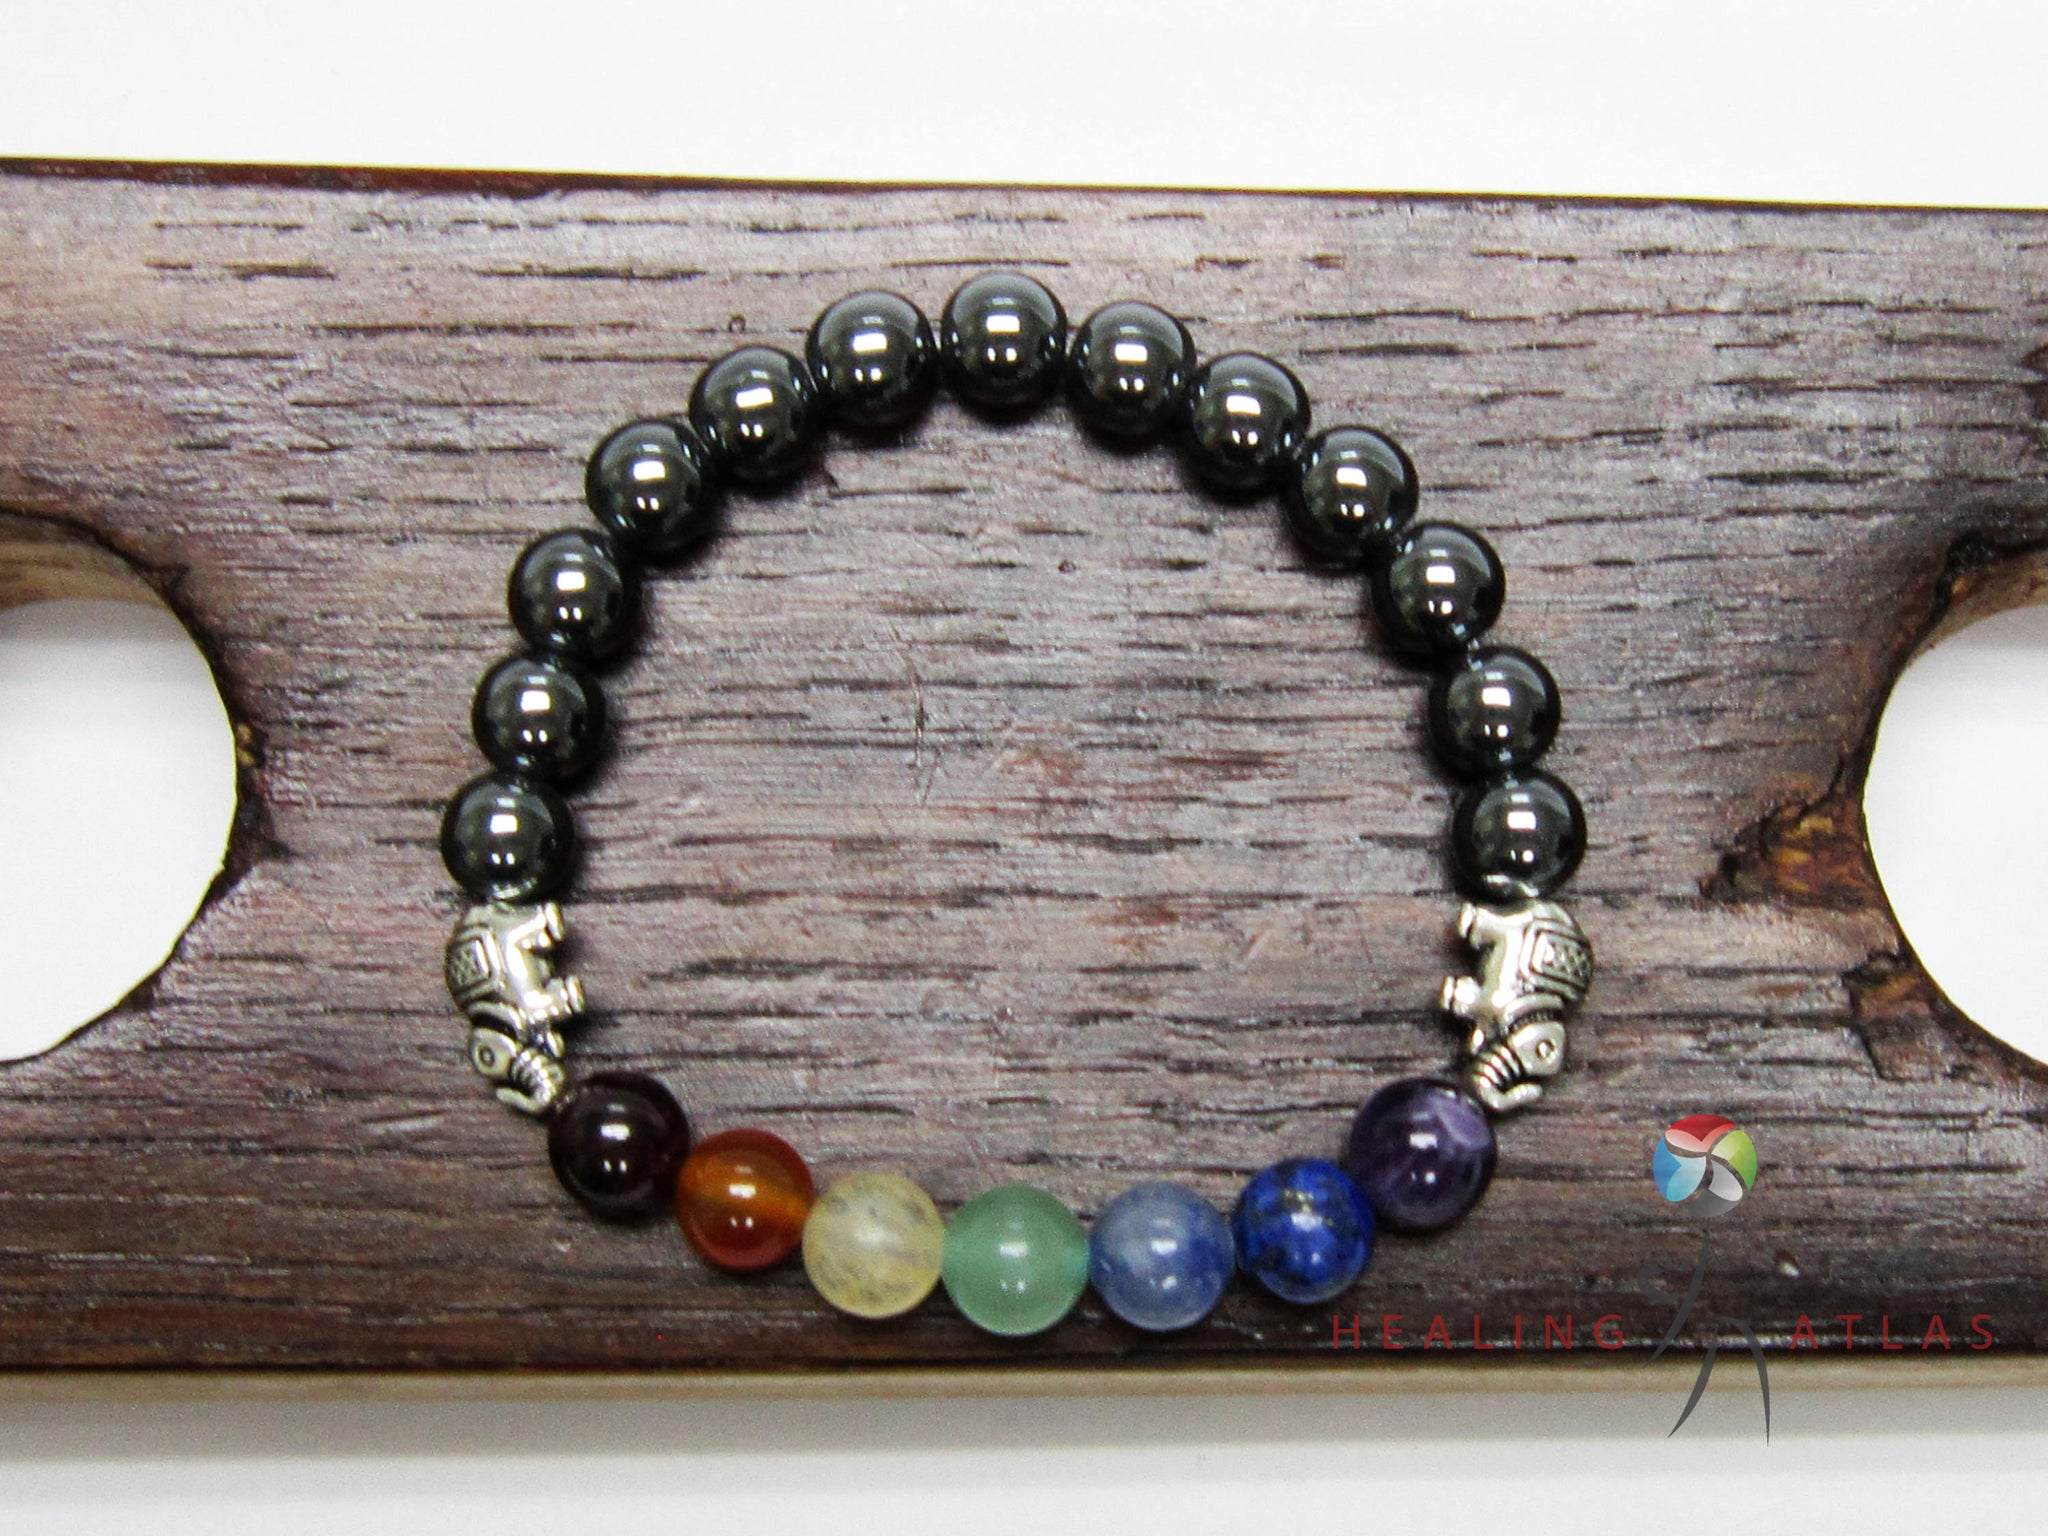 shop parentblackblue boncuk rakuten luck charm eye good bracelet artofdeals product nzb charms beads nazar evil